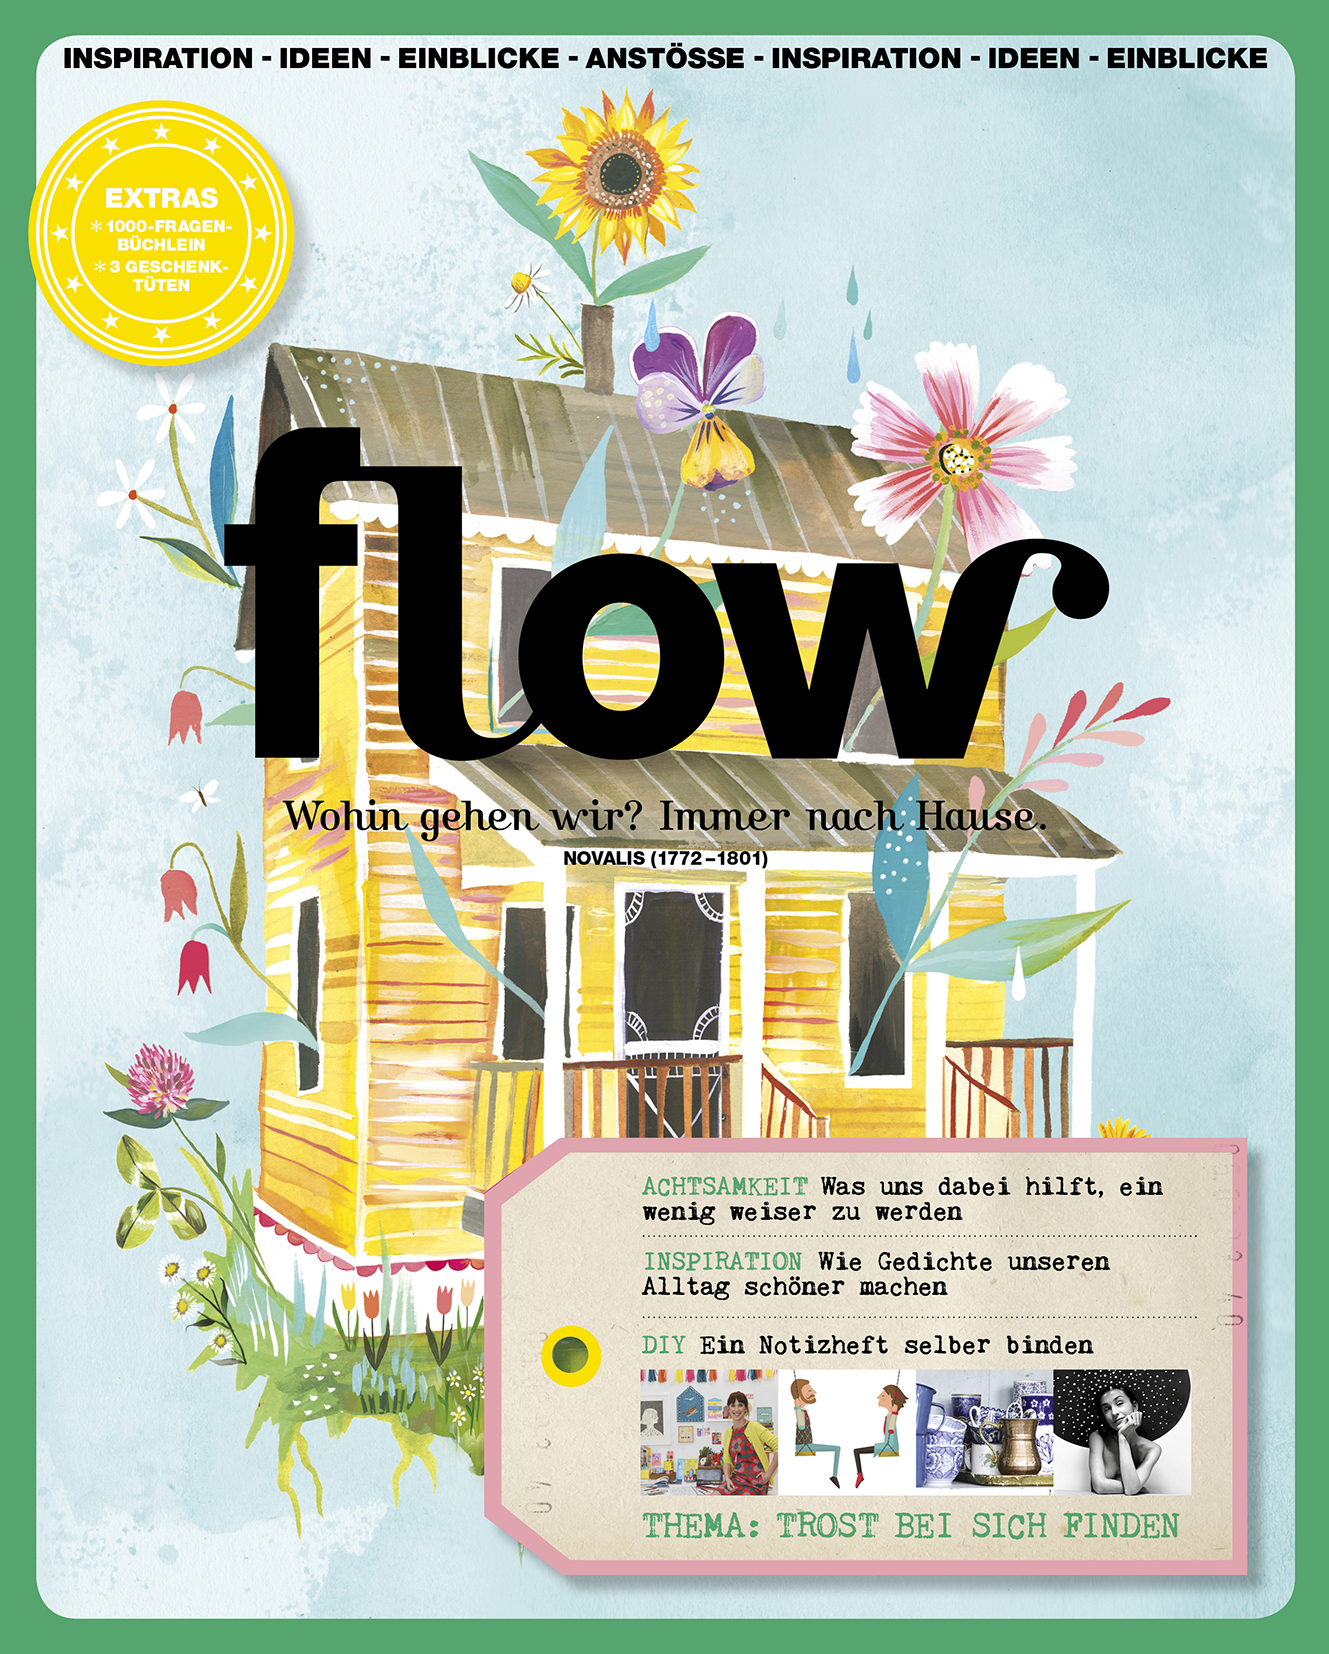 Flow Magazine Coupon Code & Deals go to lenthochkmicma.cf Total 24 active lenthochkmicma.cf Promotion Codes & Deals are listed and the latest one is updated on November 20, ; 5 coupons and 19 deals which offer up to 65% Off and extra discount, make sure to use one of them when you're shopping for lenthochkmicma.cf; Dealscove promise you.